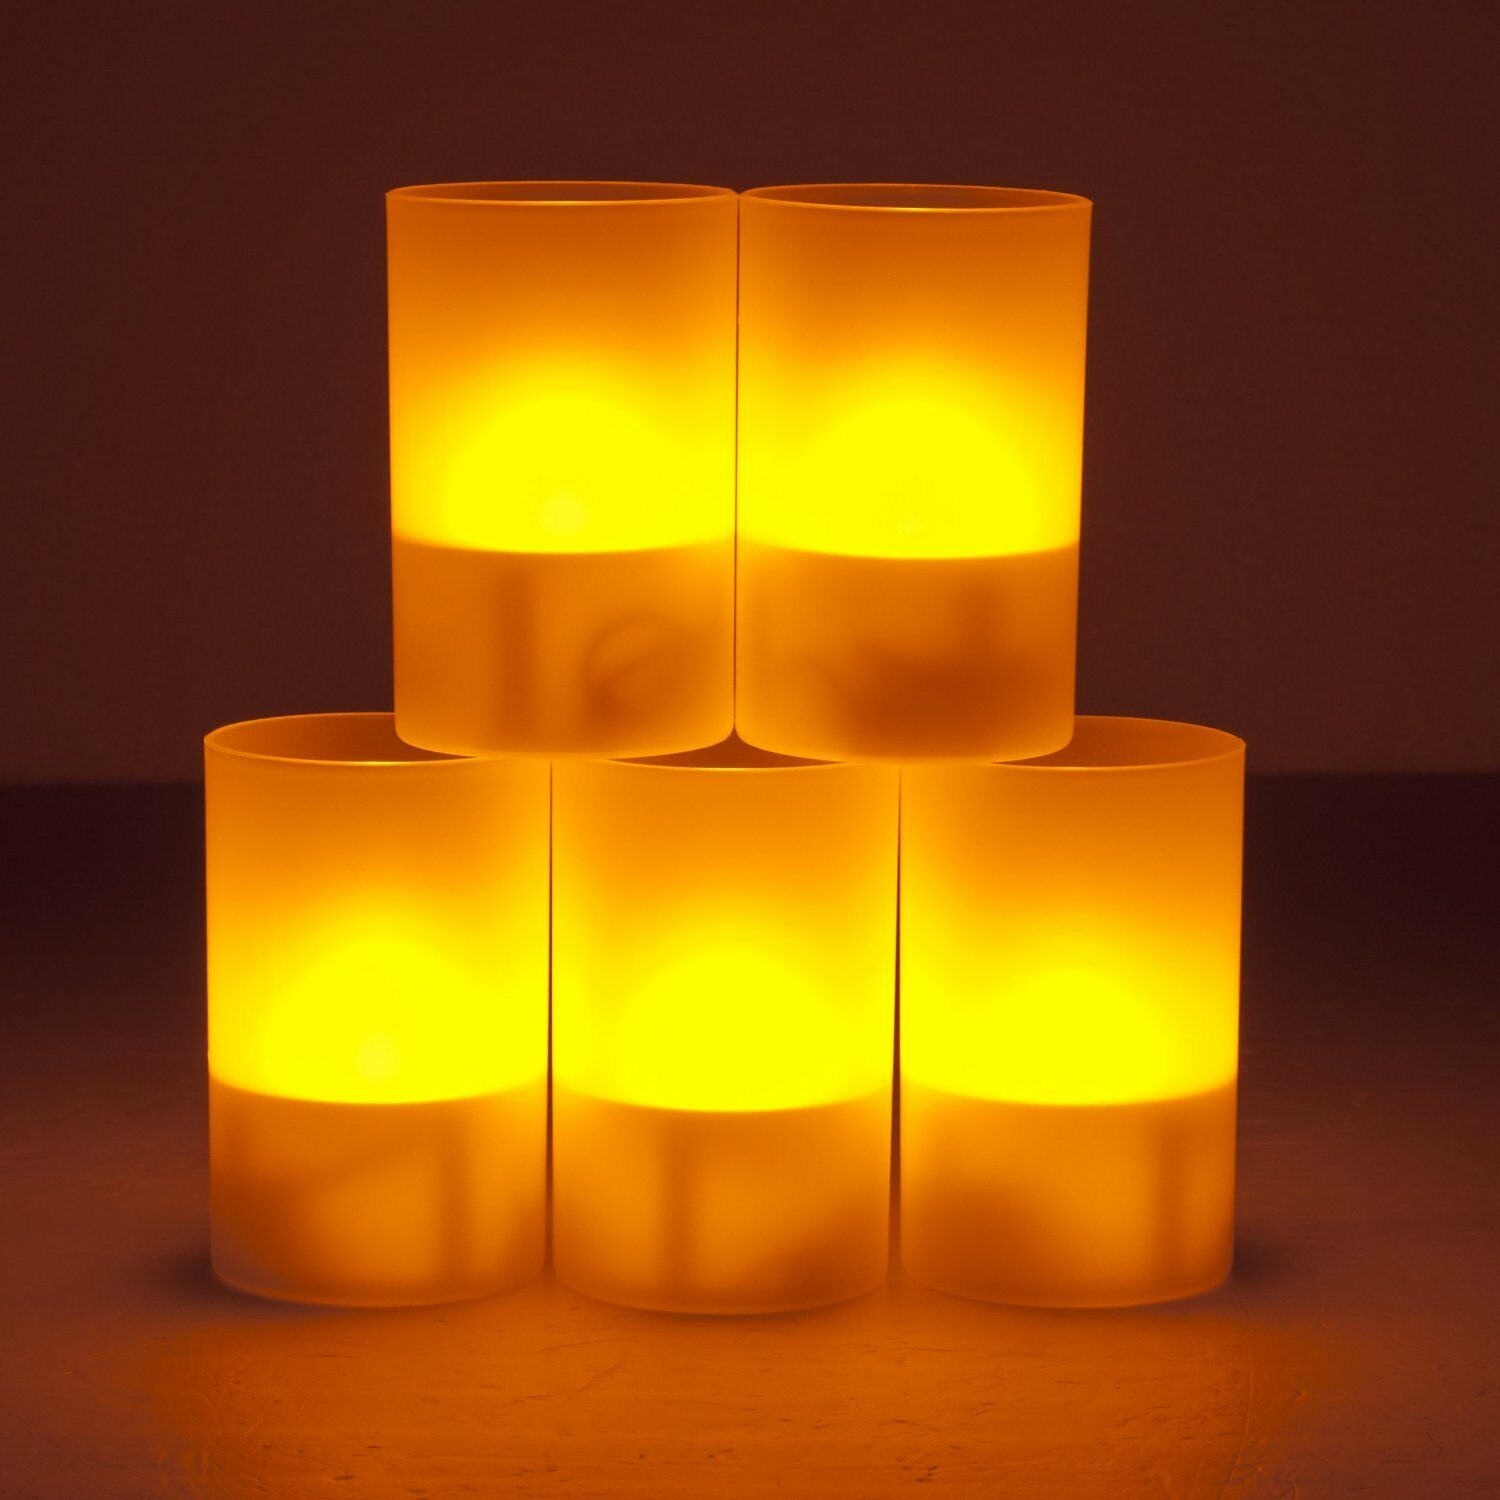 weanas 5pcs solar power led light yellow tea cup candles flickering tealights ebay. Black Bedroom Furniture Sets. Home Design Ideas